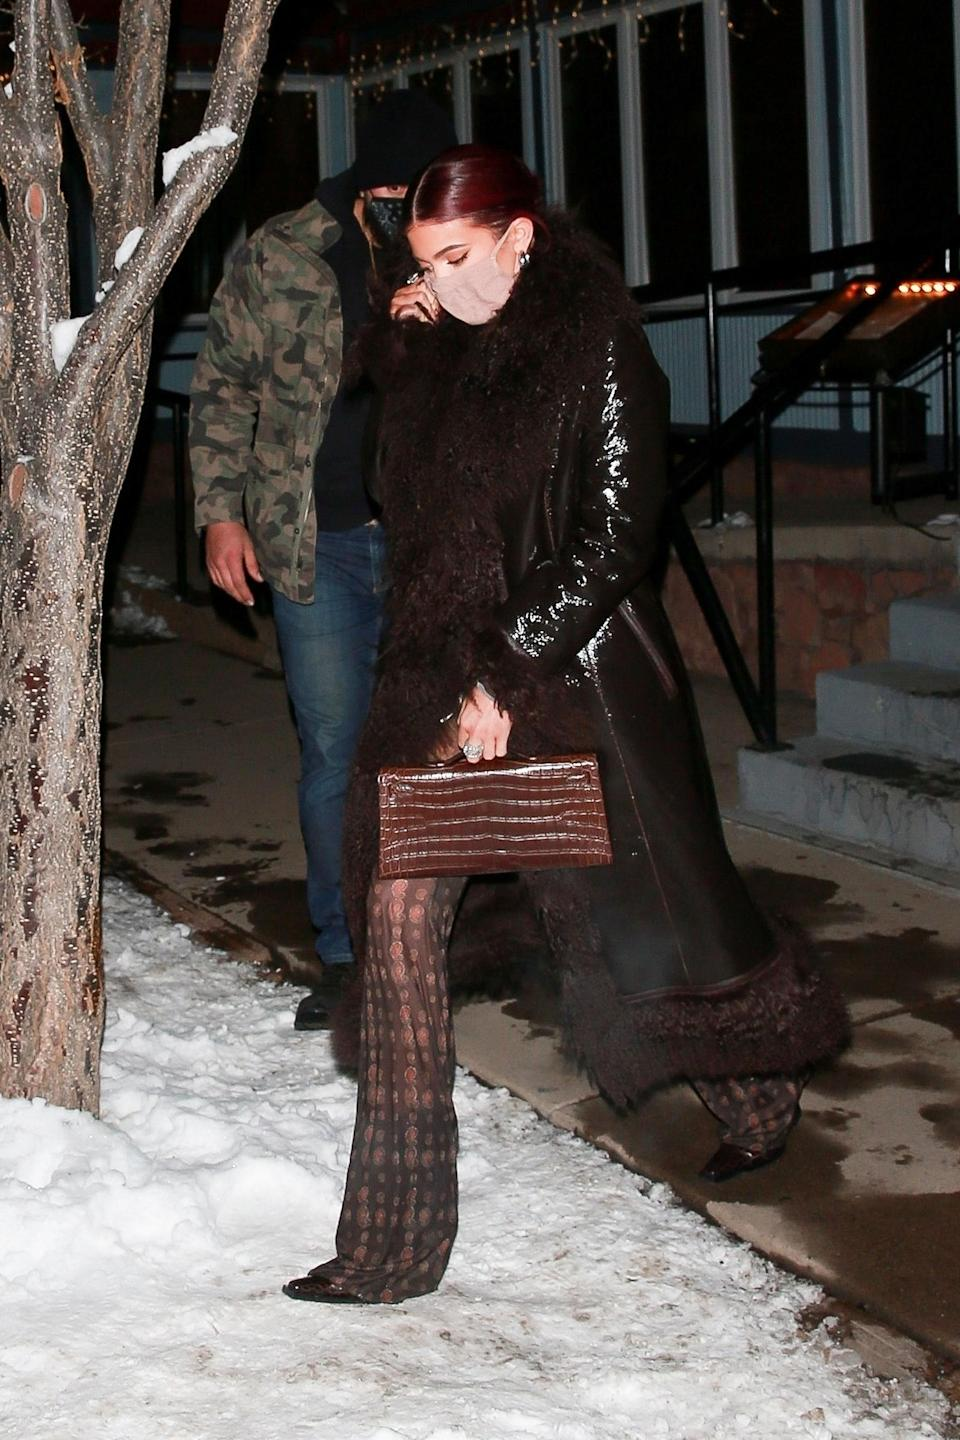 <p>WHO: Kylie Jenner</p> <p>WHAT: Saks Potts coat, Charlotte Knowles top and pants, Hermes clutch, Skims face mask</p> <p>WHERE: Aspen, Colorado</p> <p>WHEN: December 30</p>